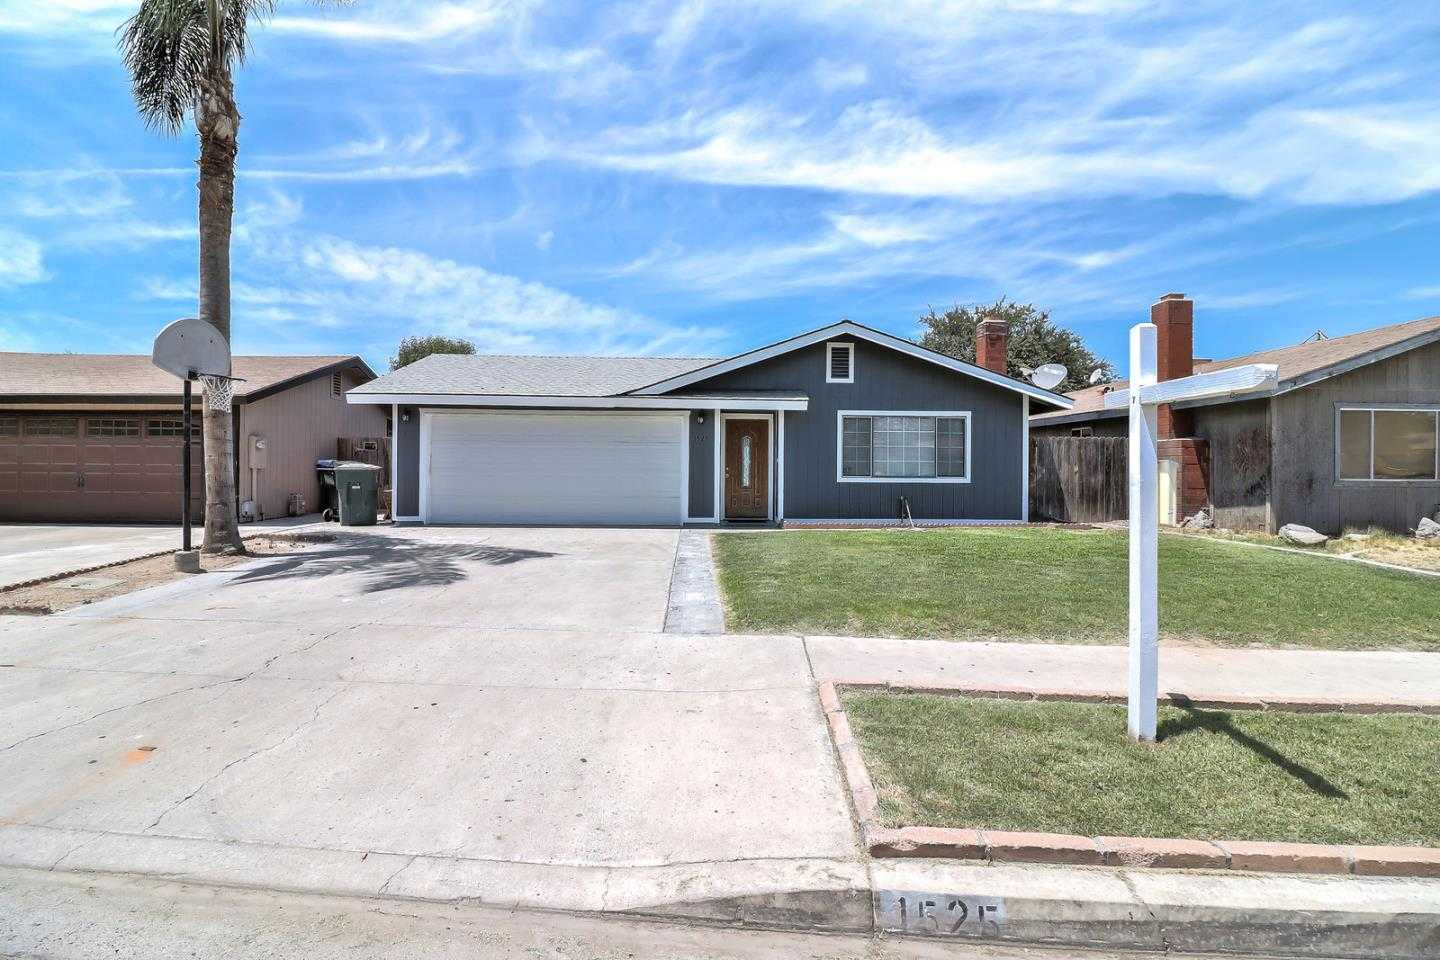 $174,800 - 3Br/2Ba -  for Sale in Visalia